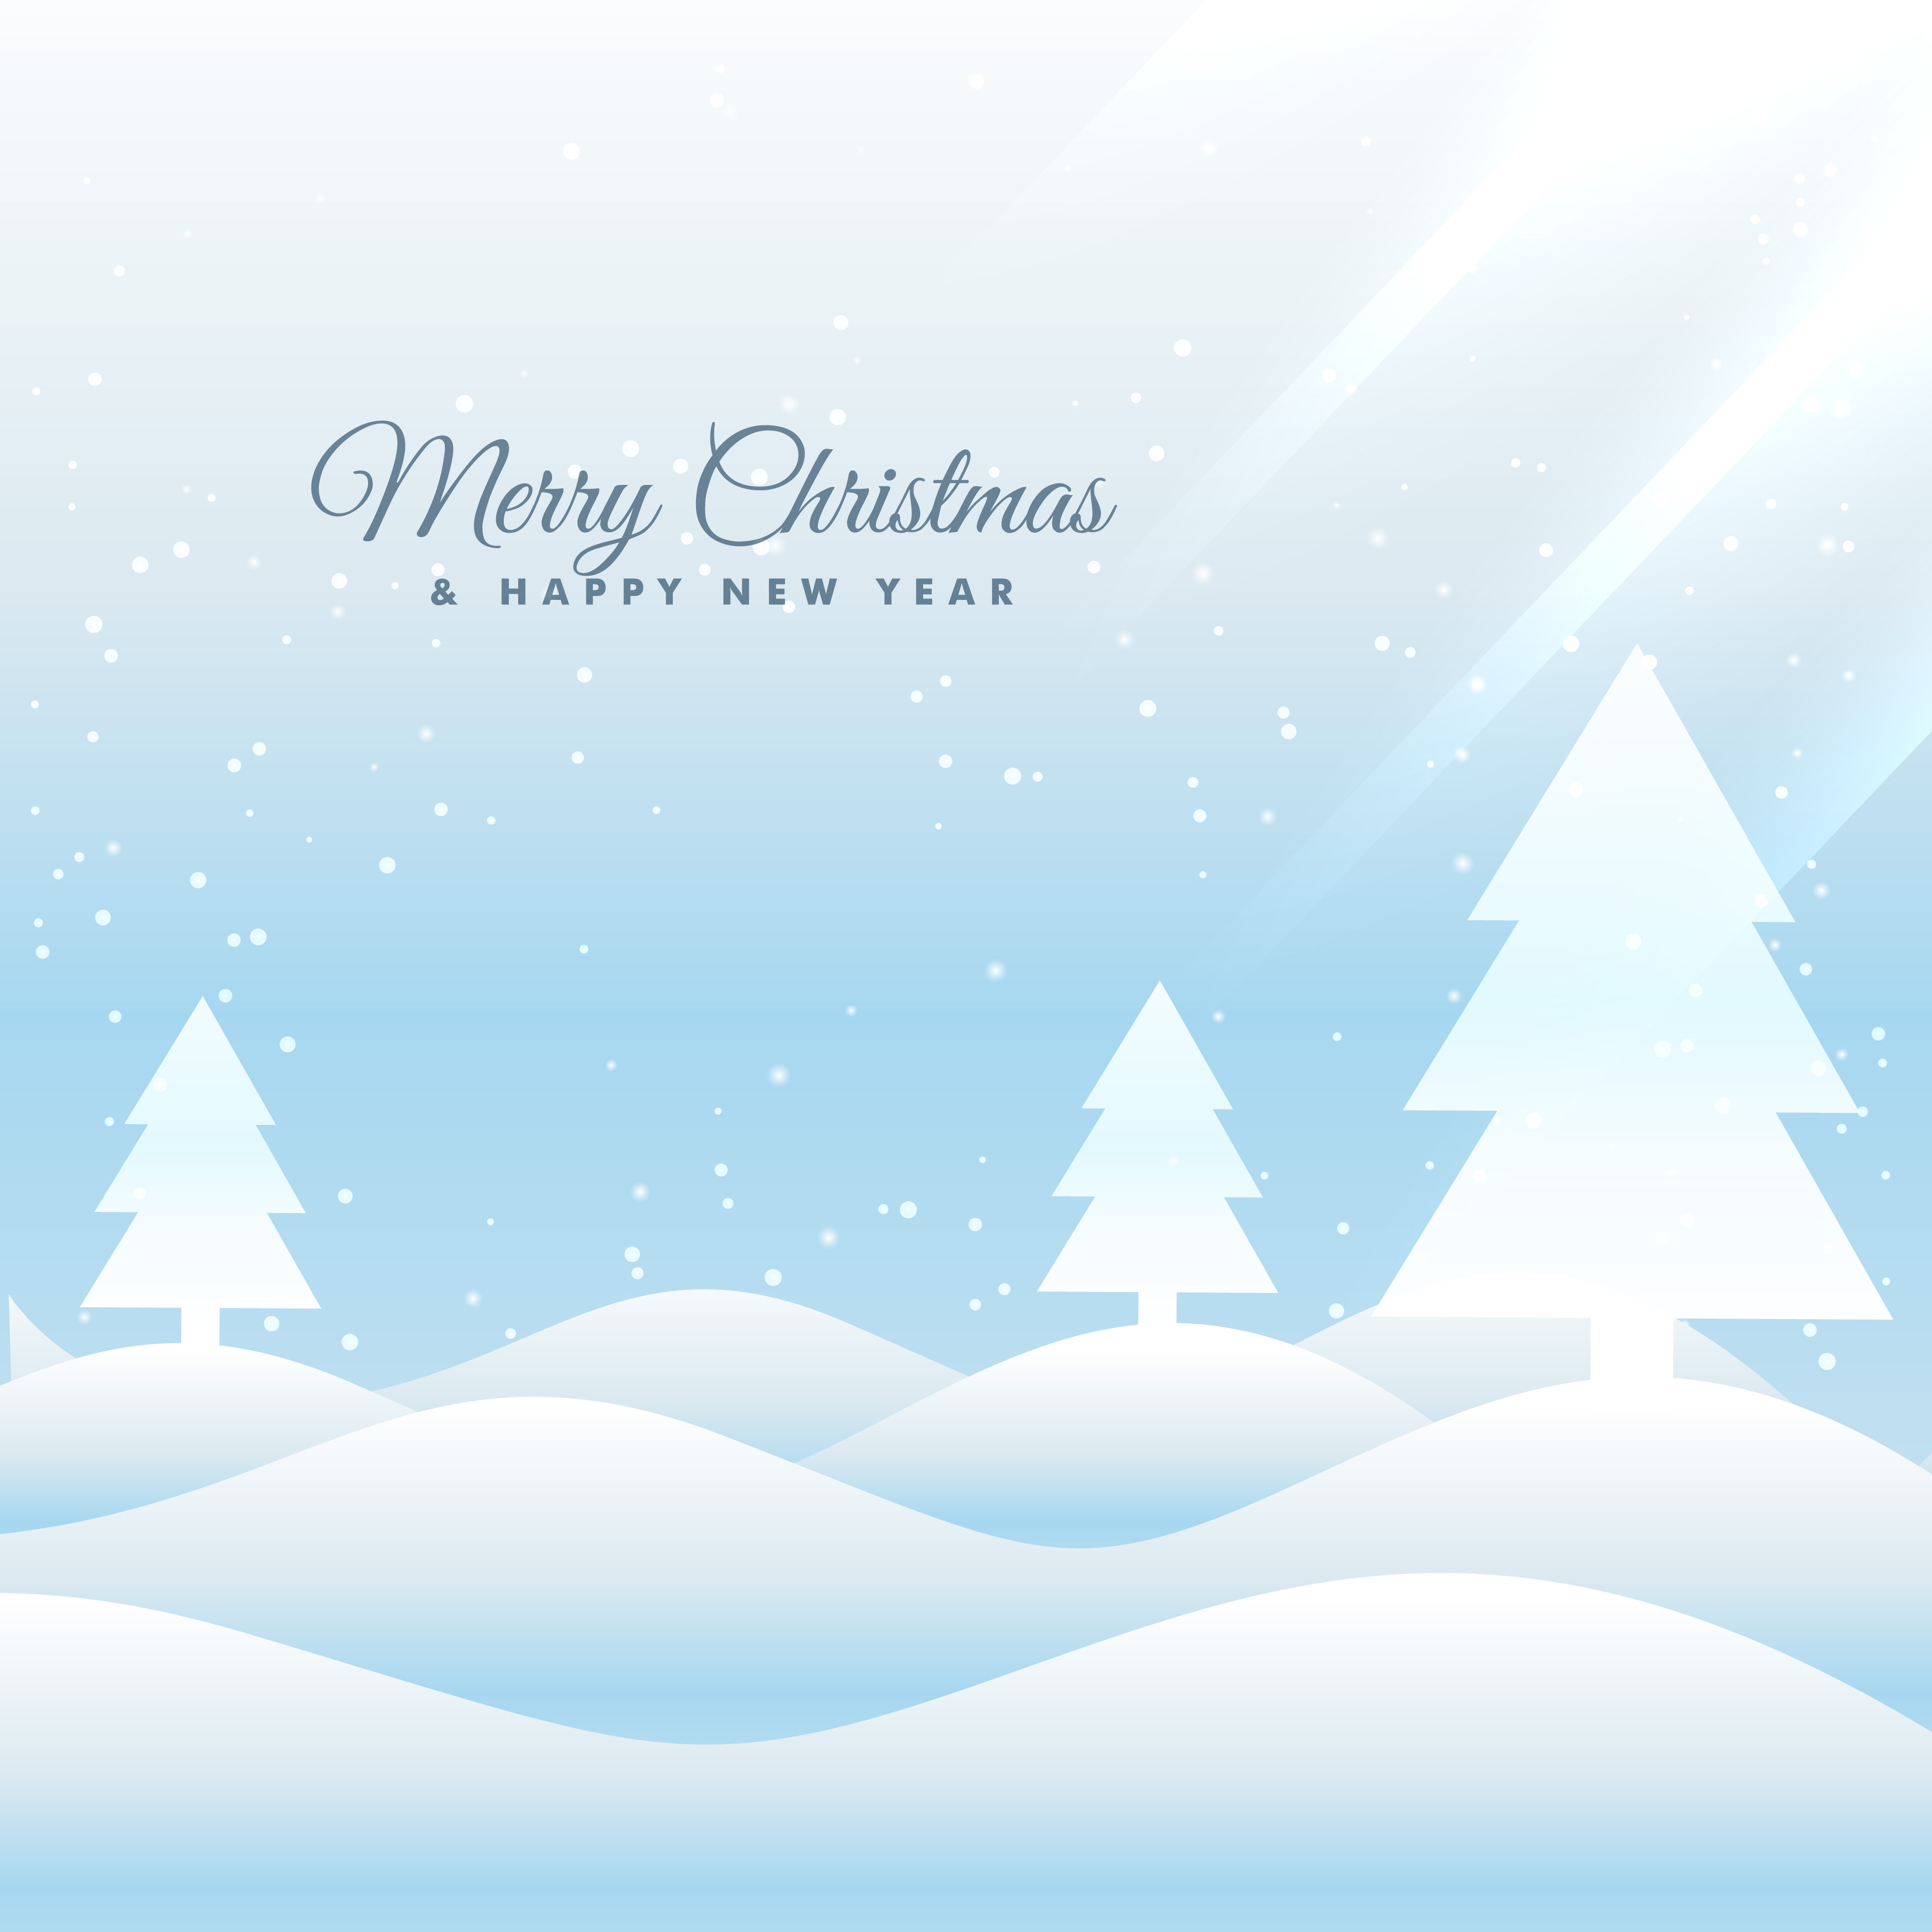 Snowy merry christmas greeting card template download free vector snowy merry christmas greeting card template download free vector art stock graphics images m4hsunfo